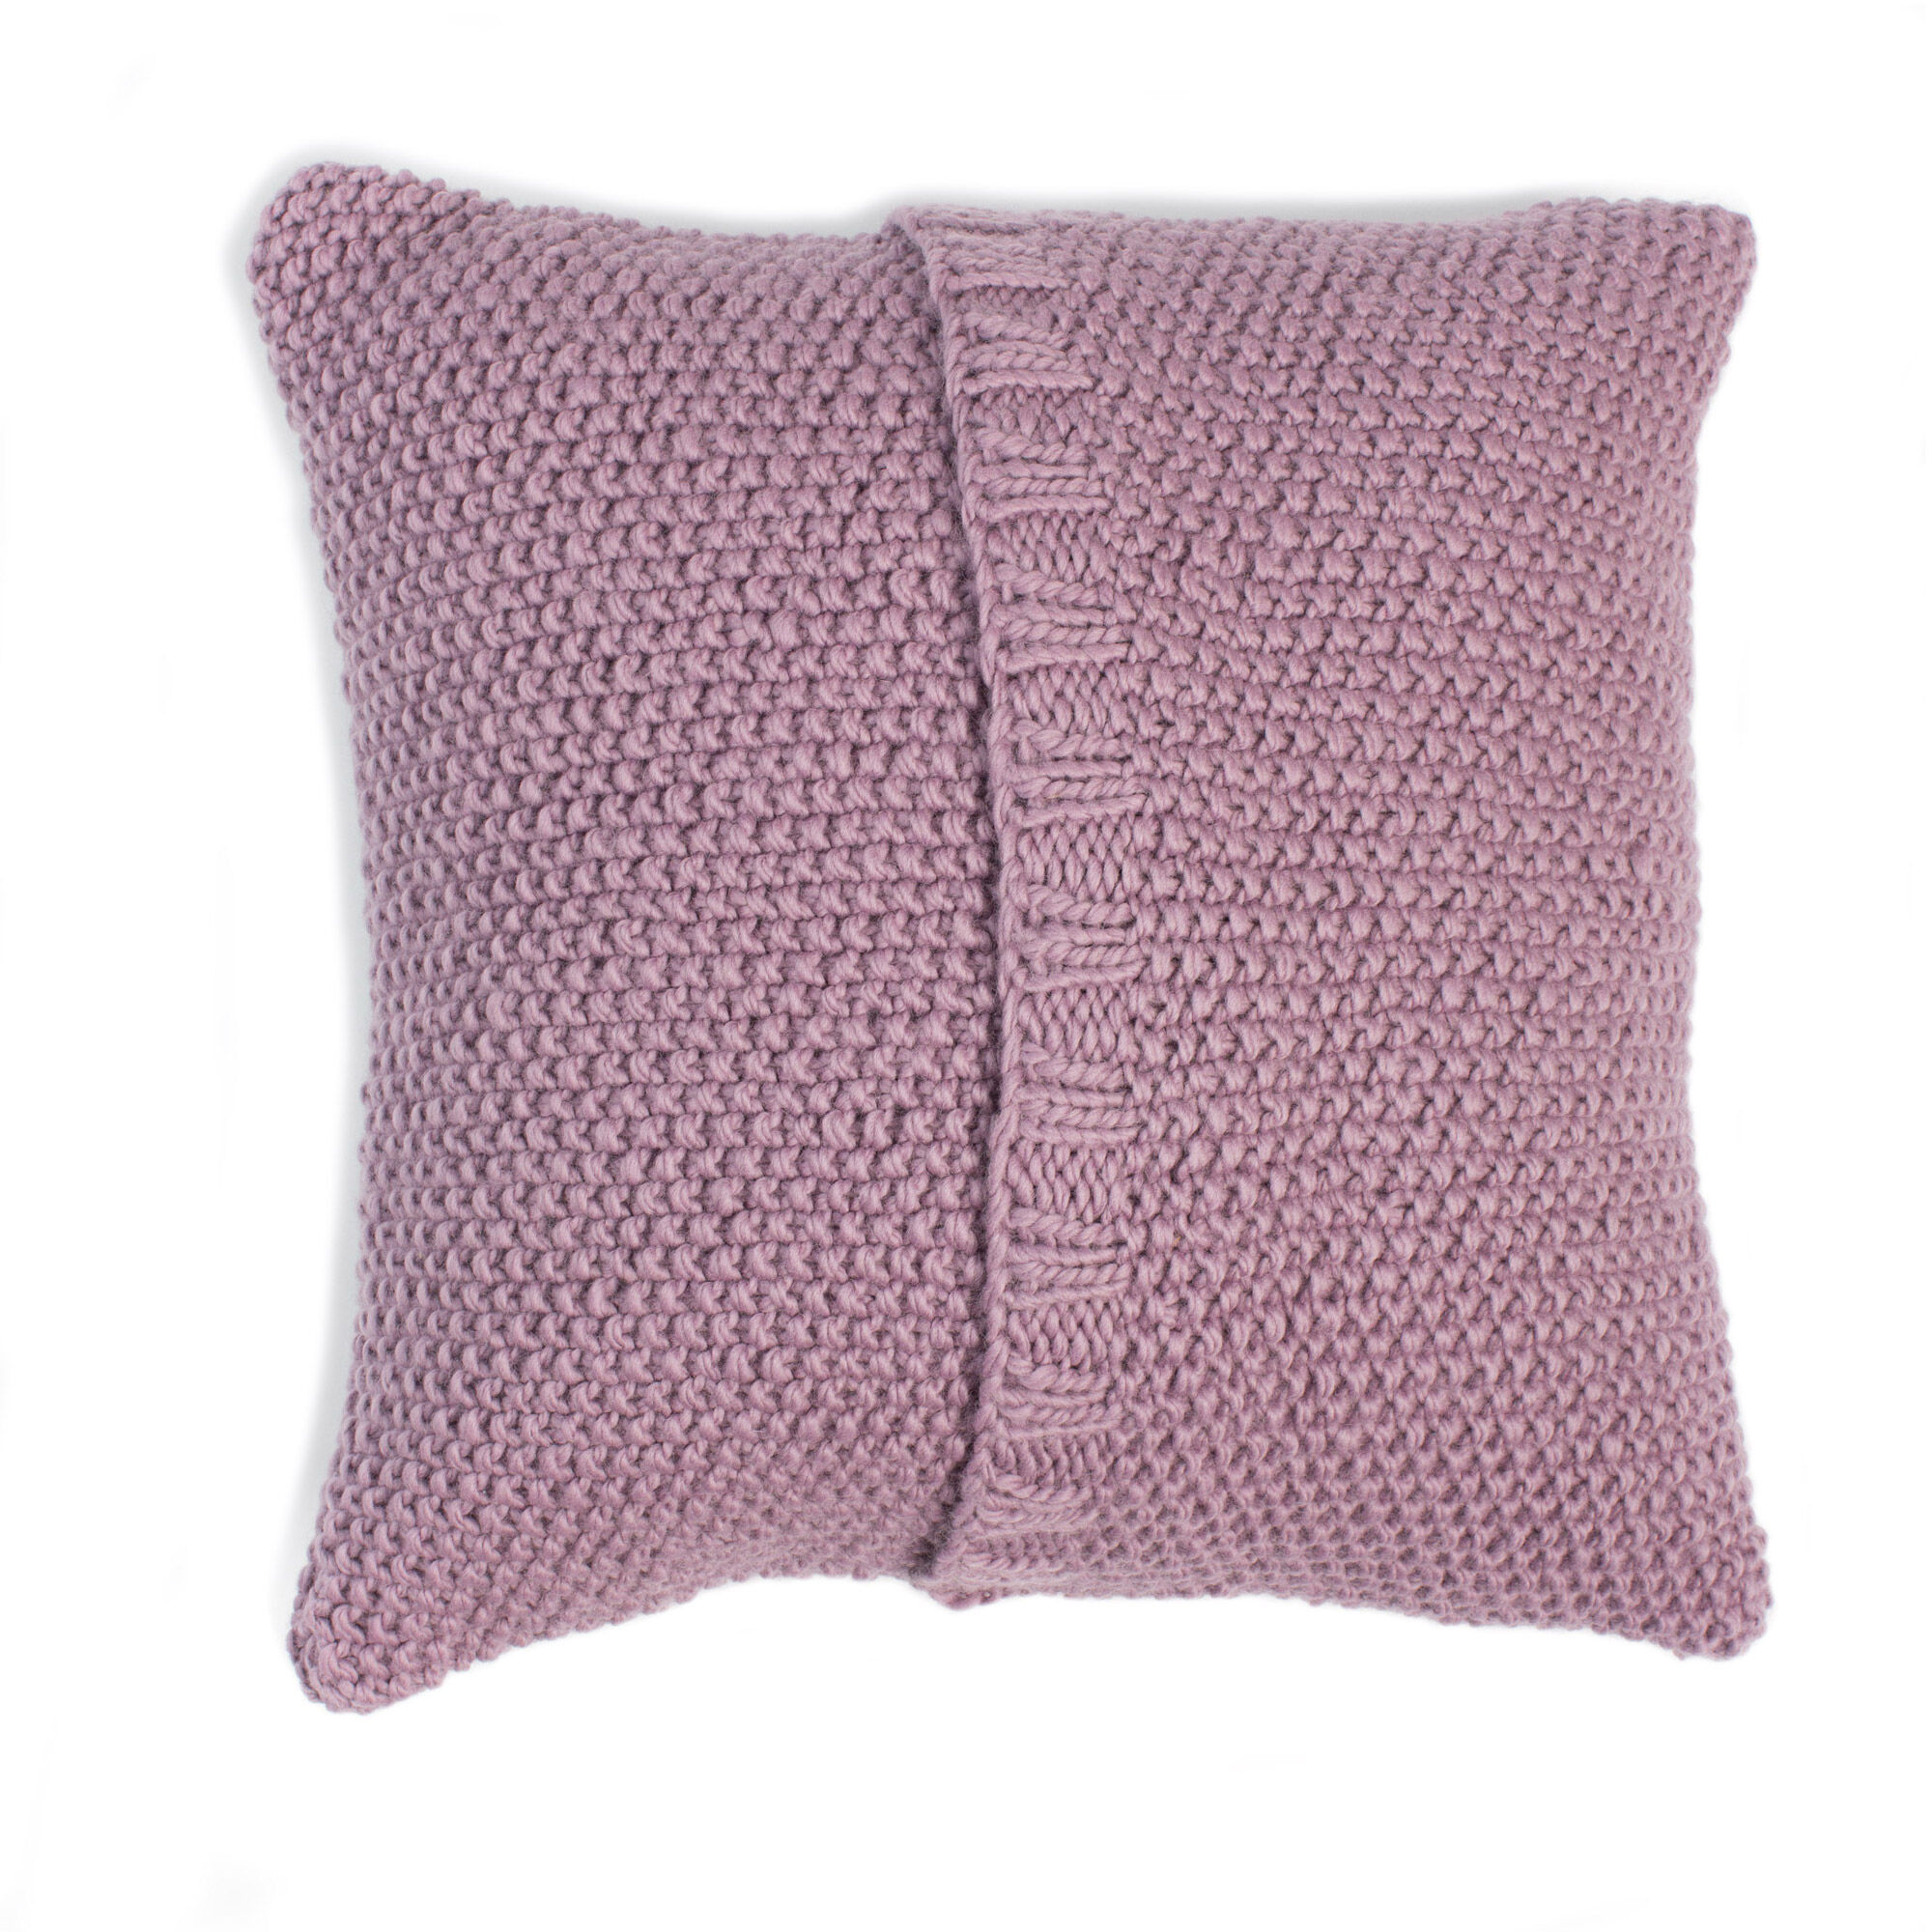 Patons Seed Stitch Knit Pillow, Version 1 Pattern | Yarnspirations